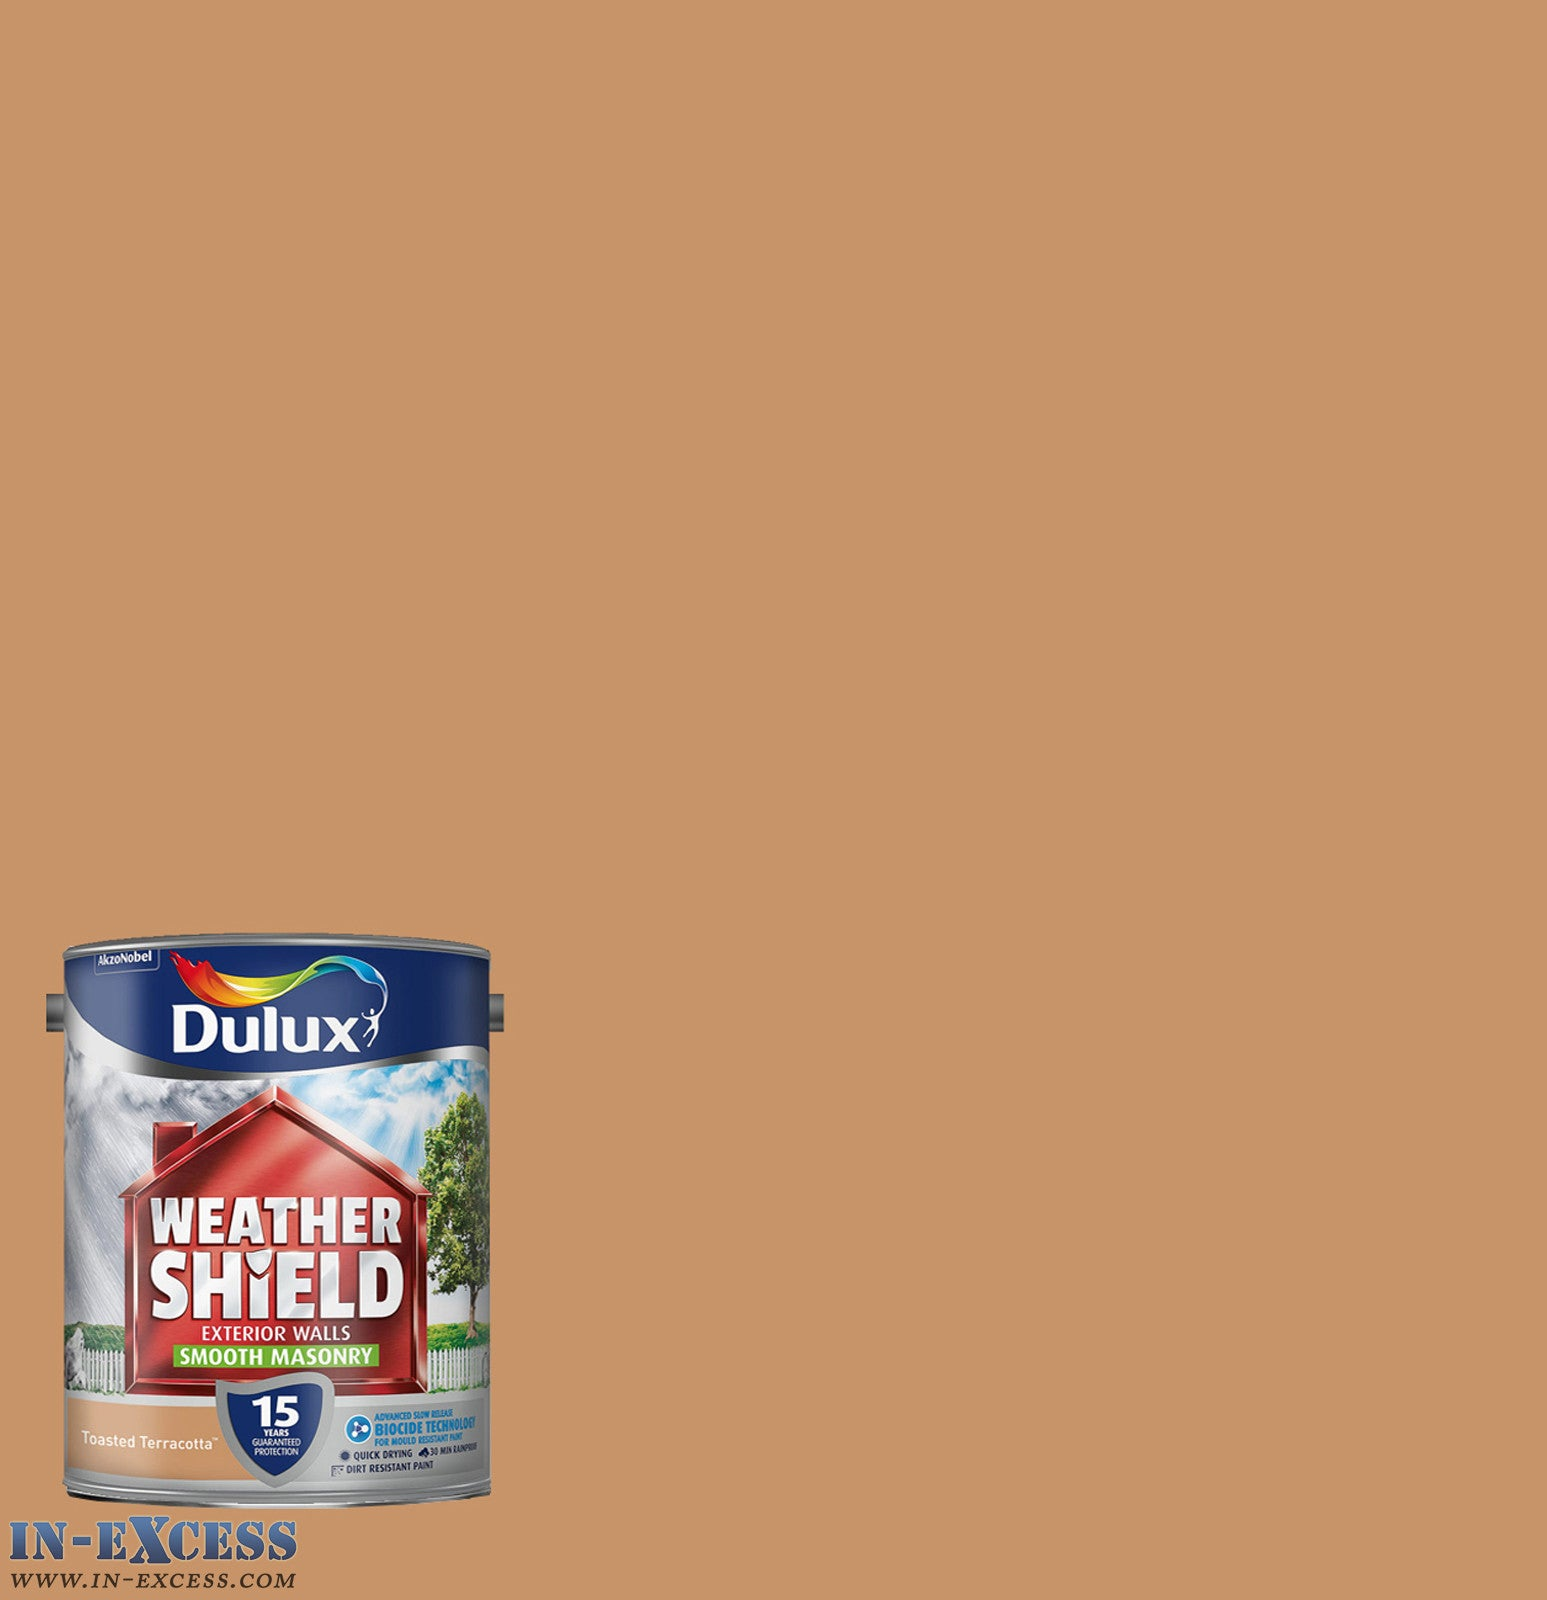 Dulux Weather Shield Exterior Walls Masonry Paint Smooth Toasted